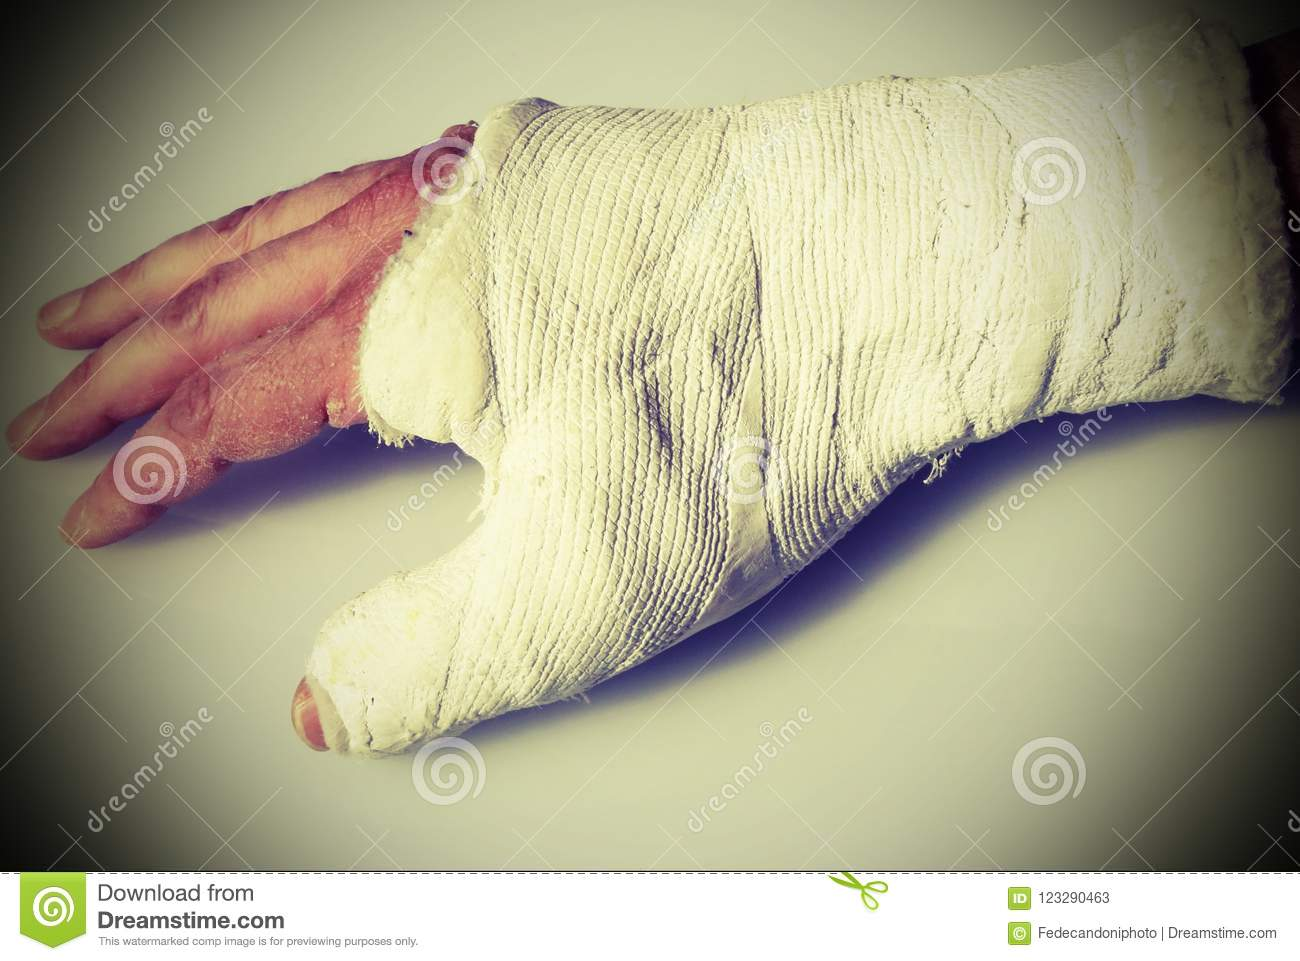 Fractured Hand Of The Man With The Orthopedic Plaster Cast